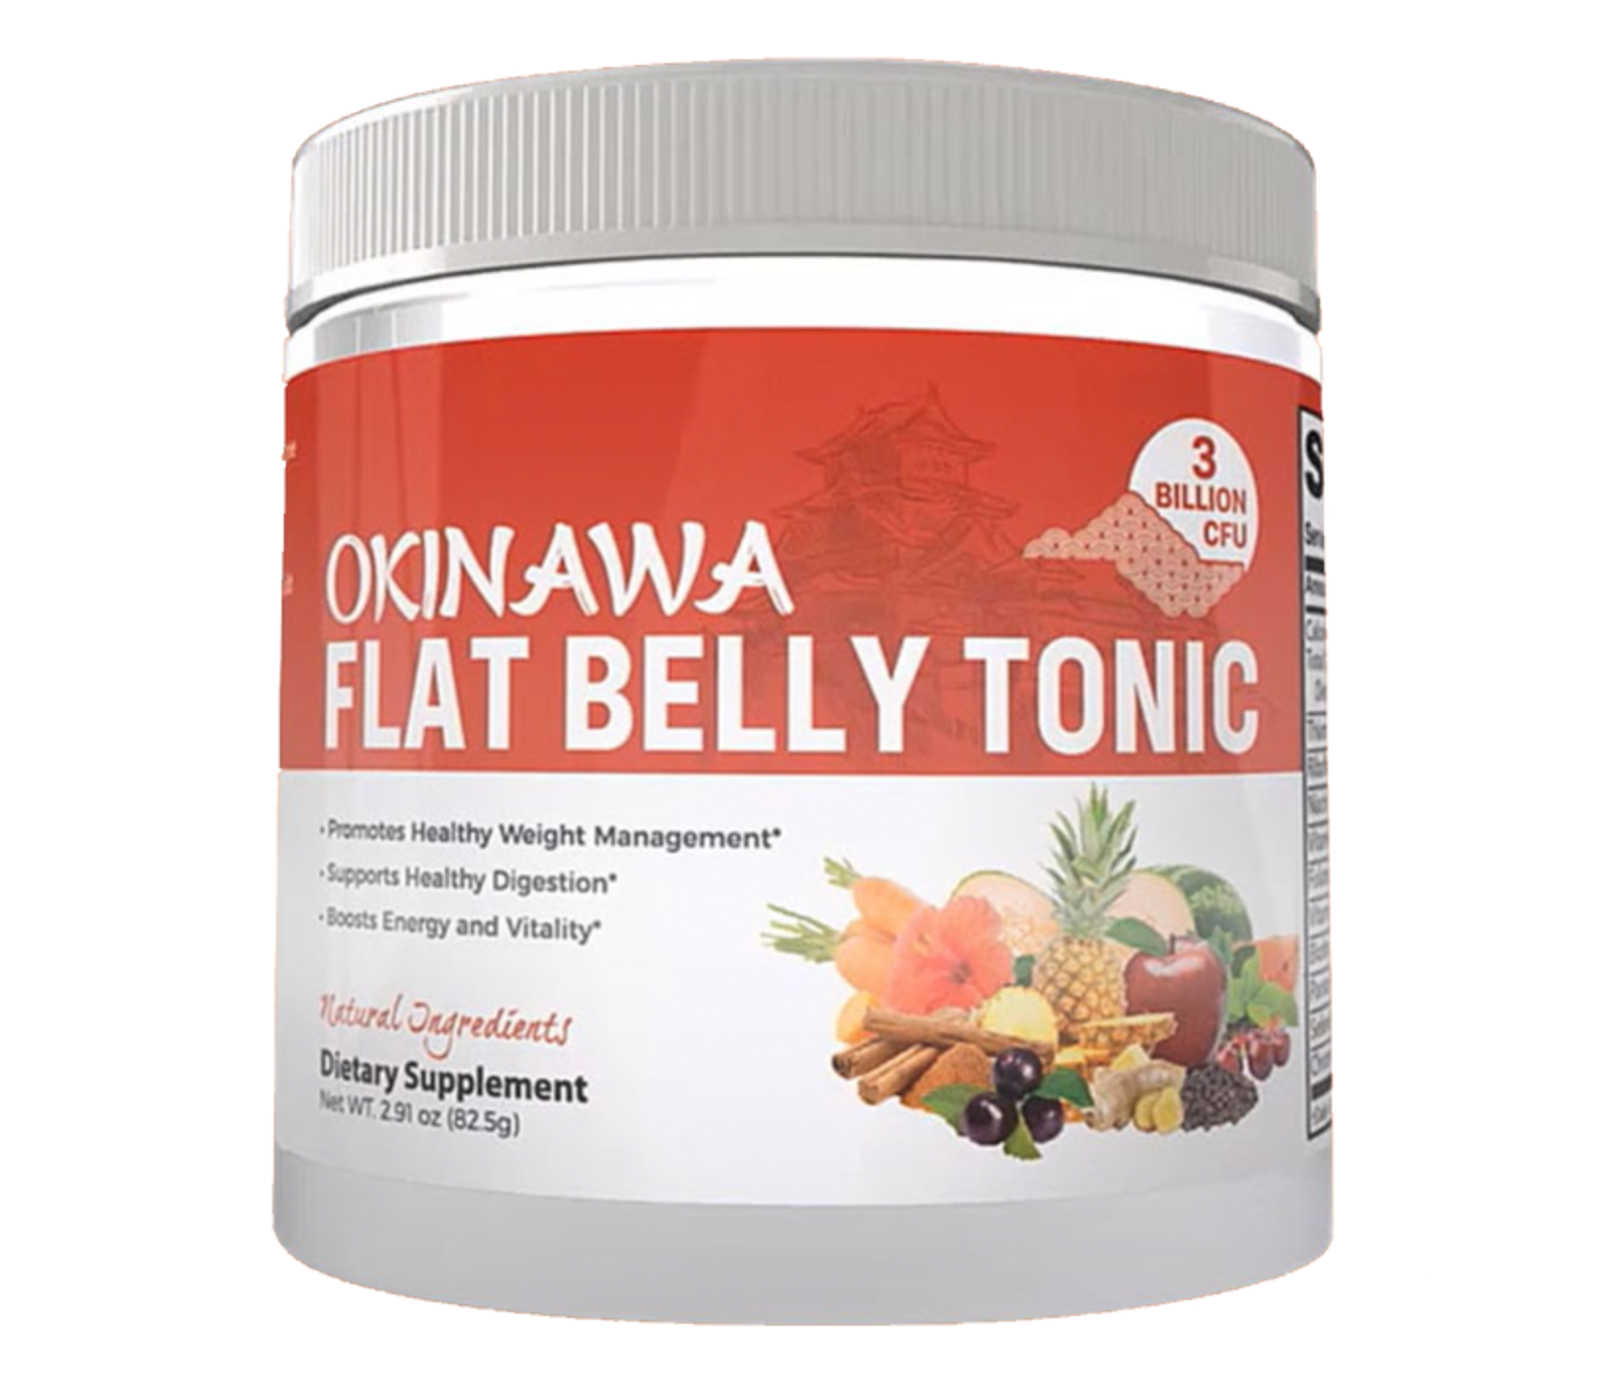 Is Okinawa flat belly tonic safe to use?